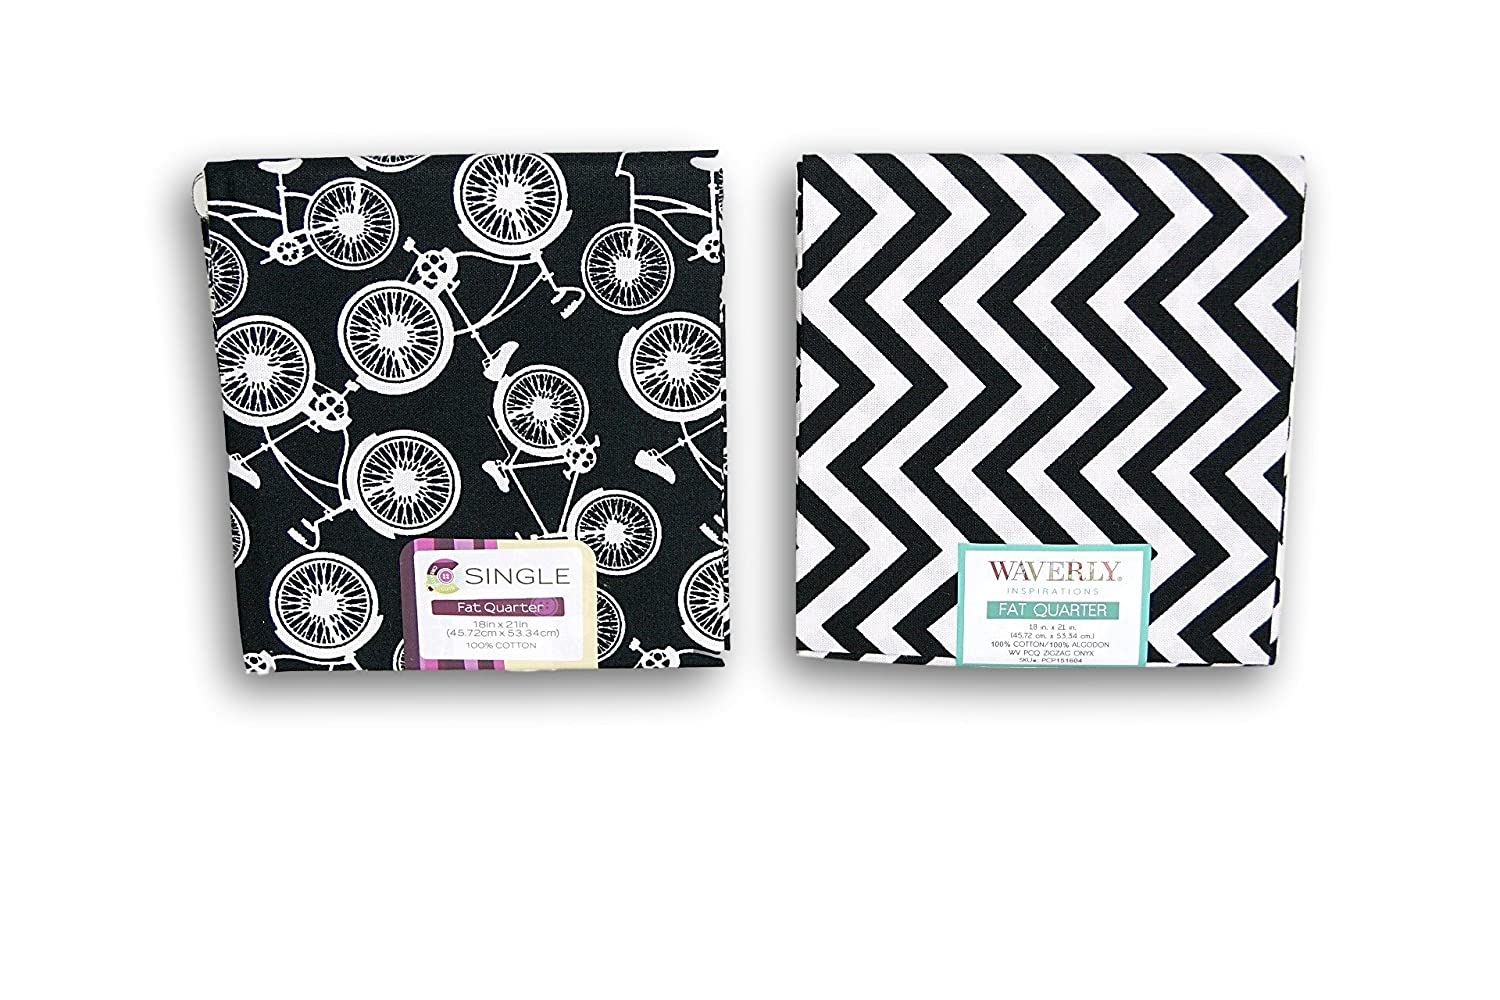 Creative Cuts Fat Quarters Bundle - Black and White Pattern Theme Fabric Editions 4336917390